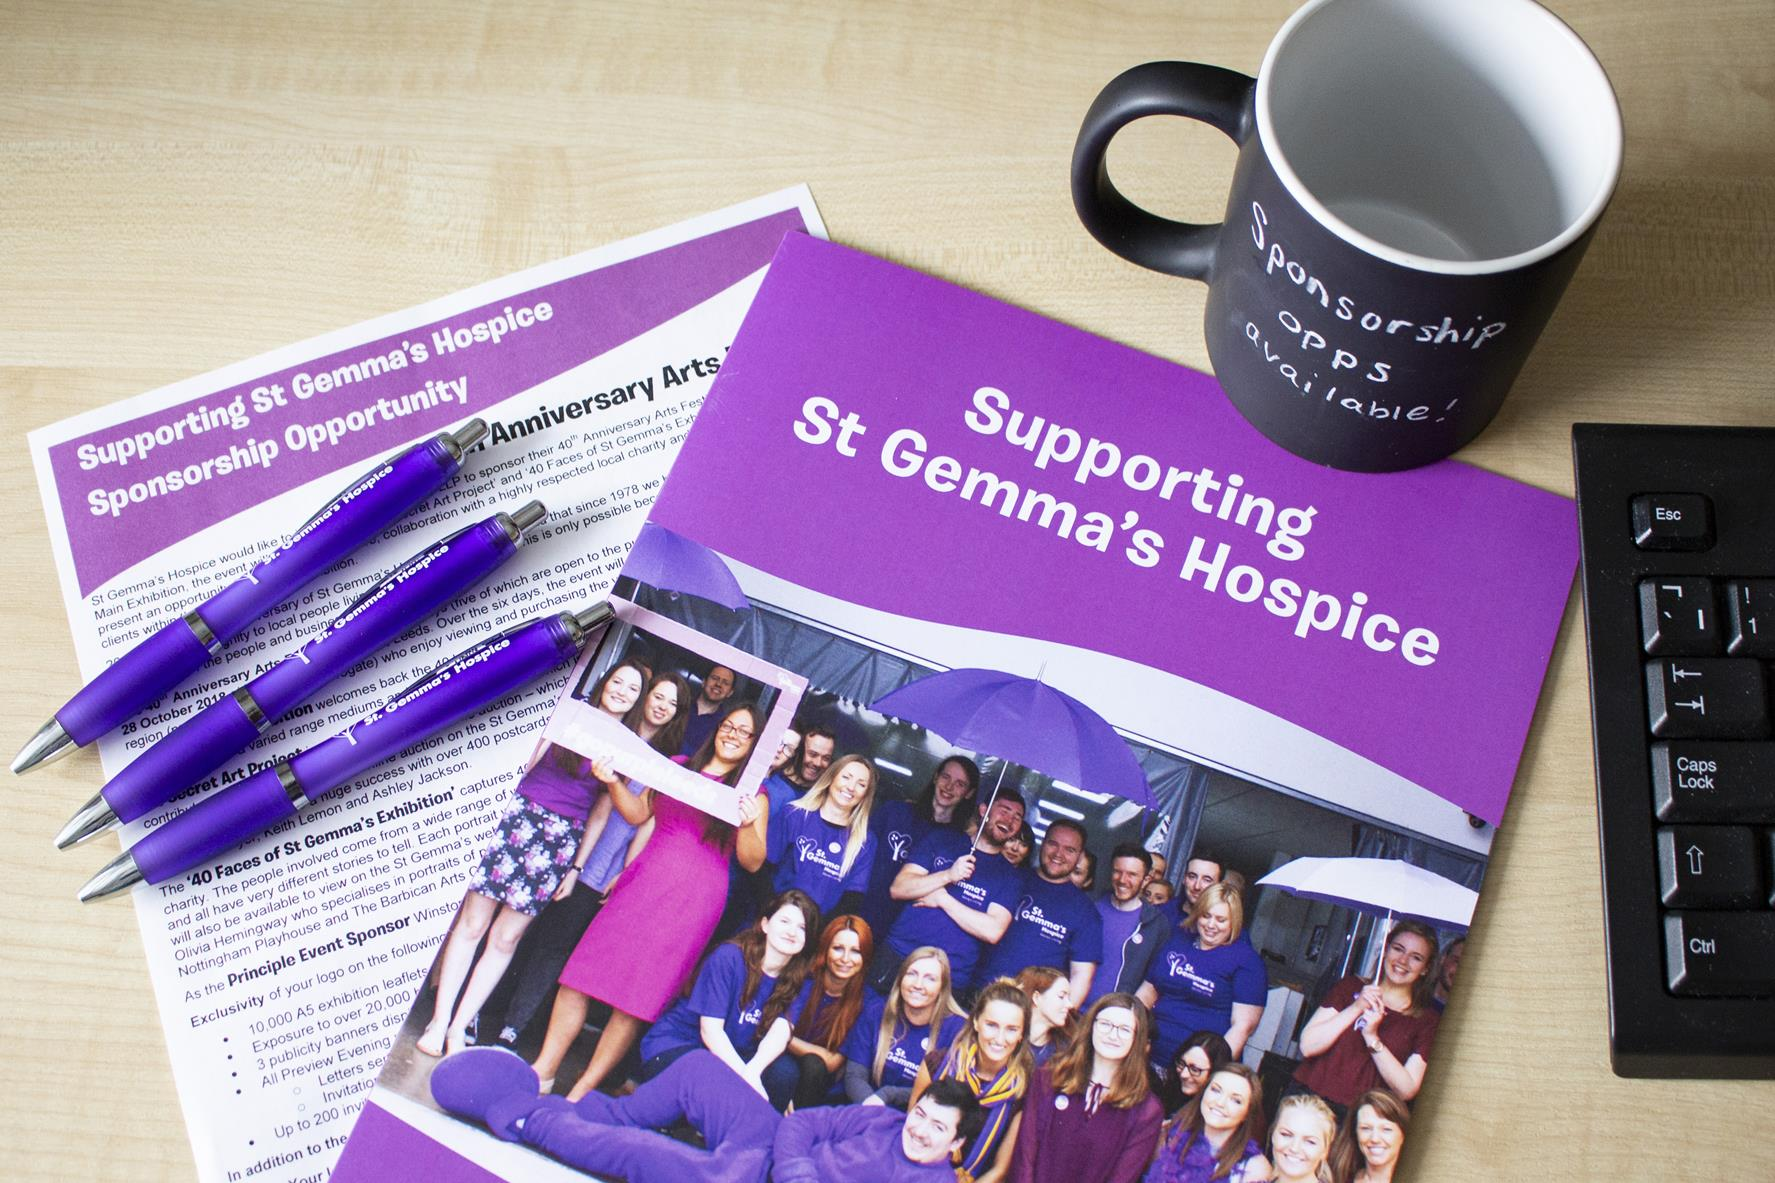 A copy of the 'Supporting St Gemma's Hospice' pack on a table next to a black mug that says 'Sponsorship Opportunities'.